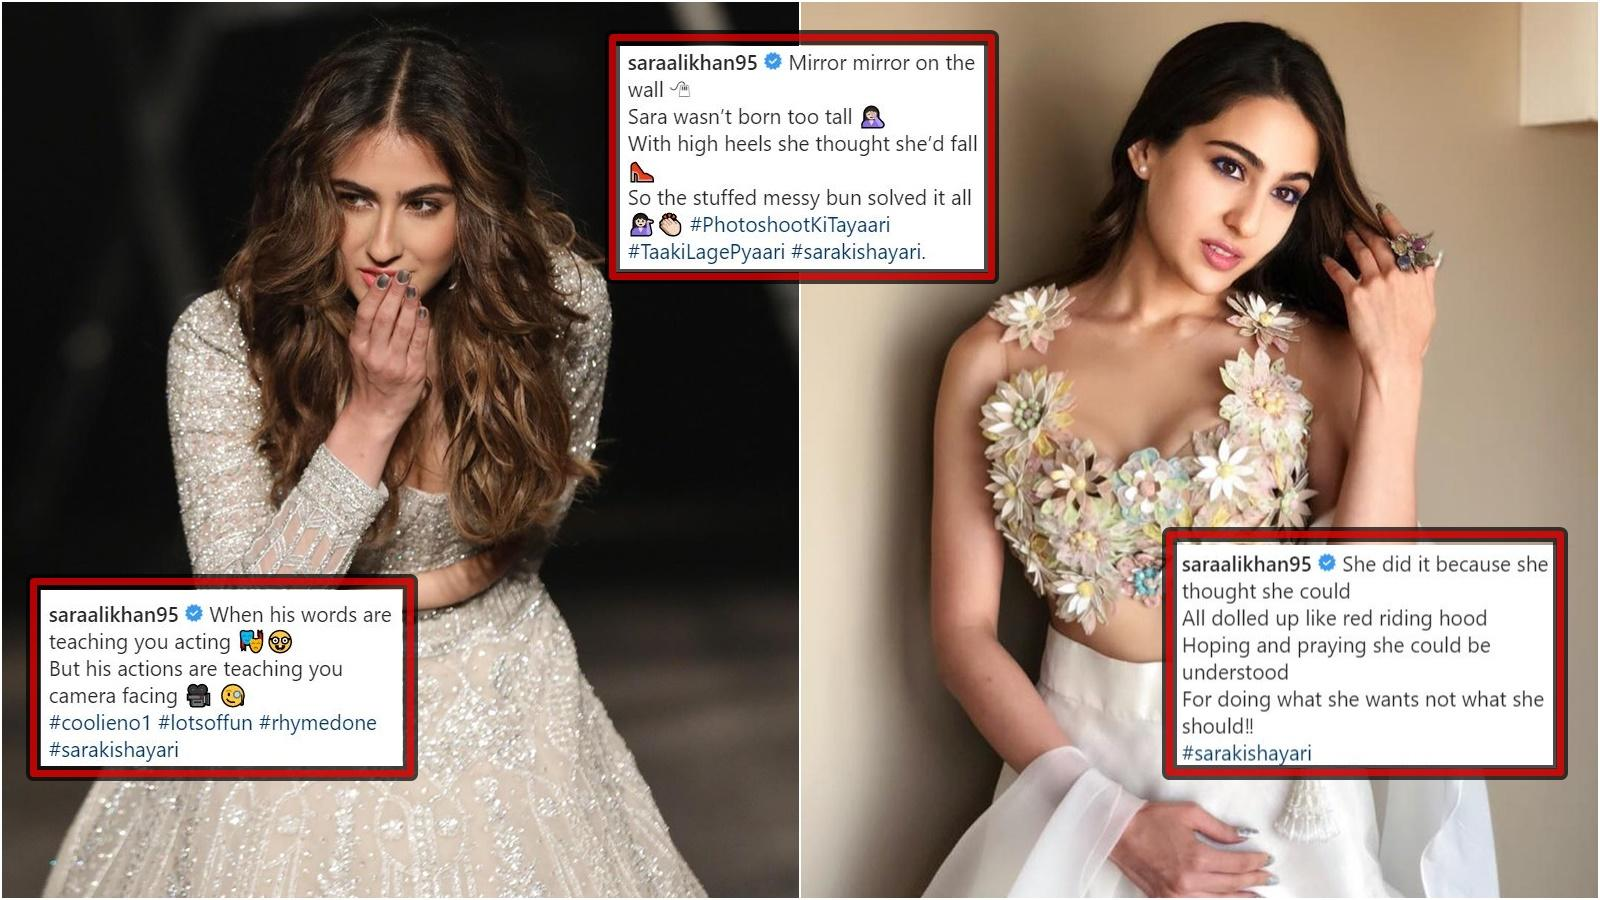 sara-ali-khan-spreads-her-magic-with-sara-ki-shayari-leaves-fans-amused